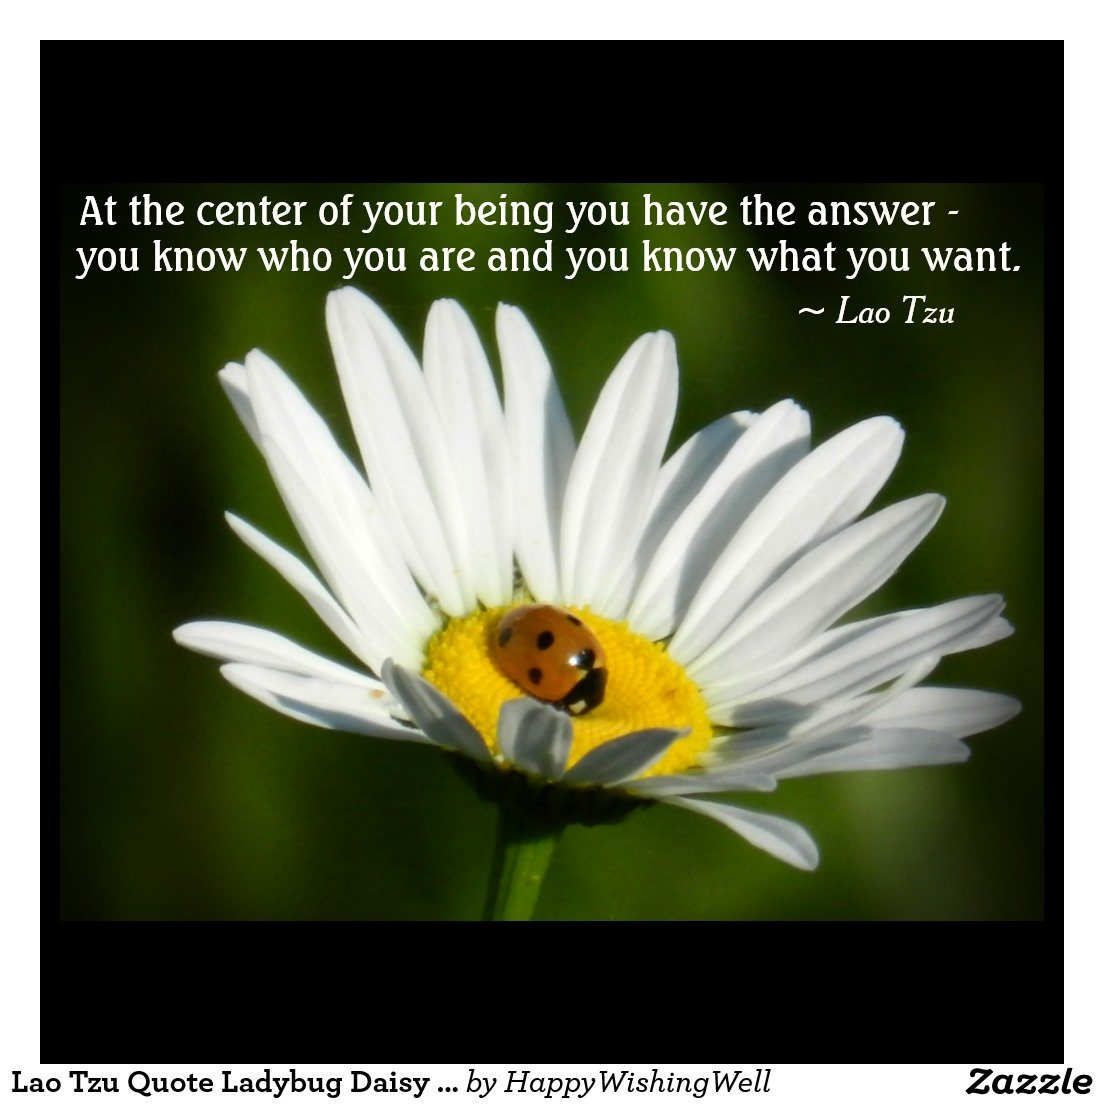 Inspirational Quotes About Positive: Inspirational Quotes Ladybug. QuotesGram